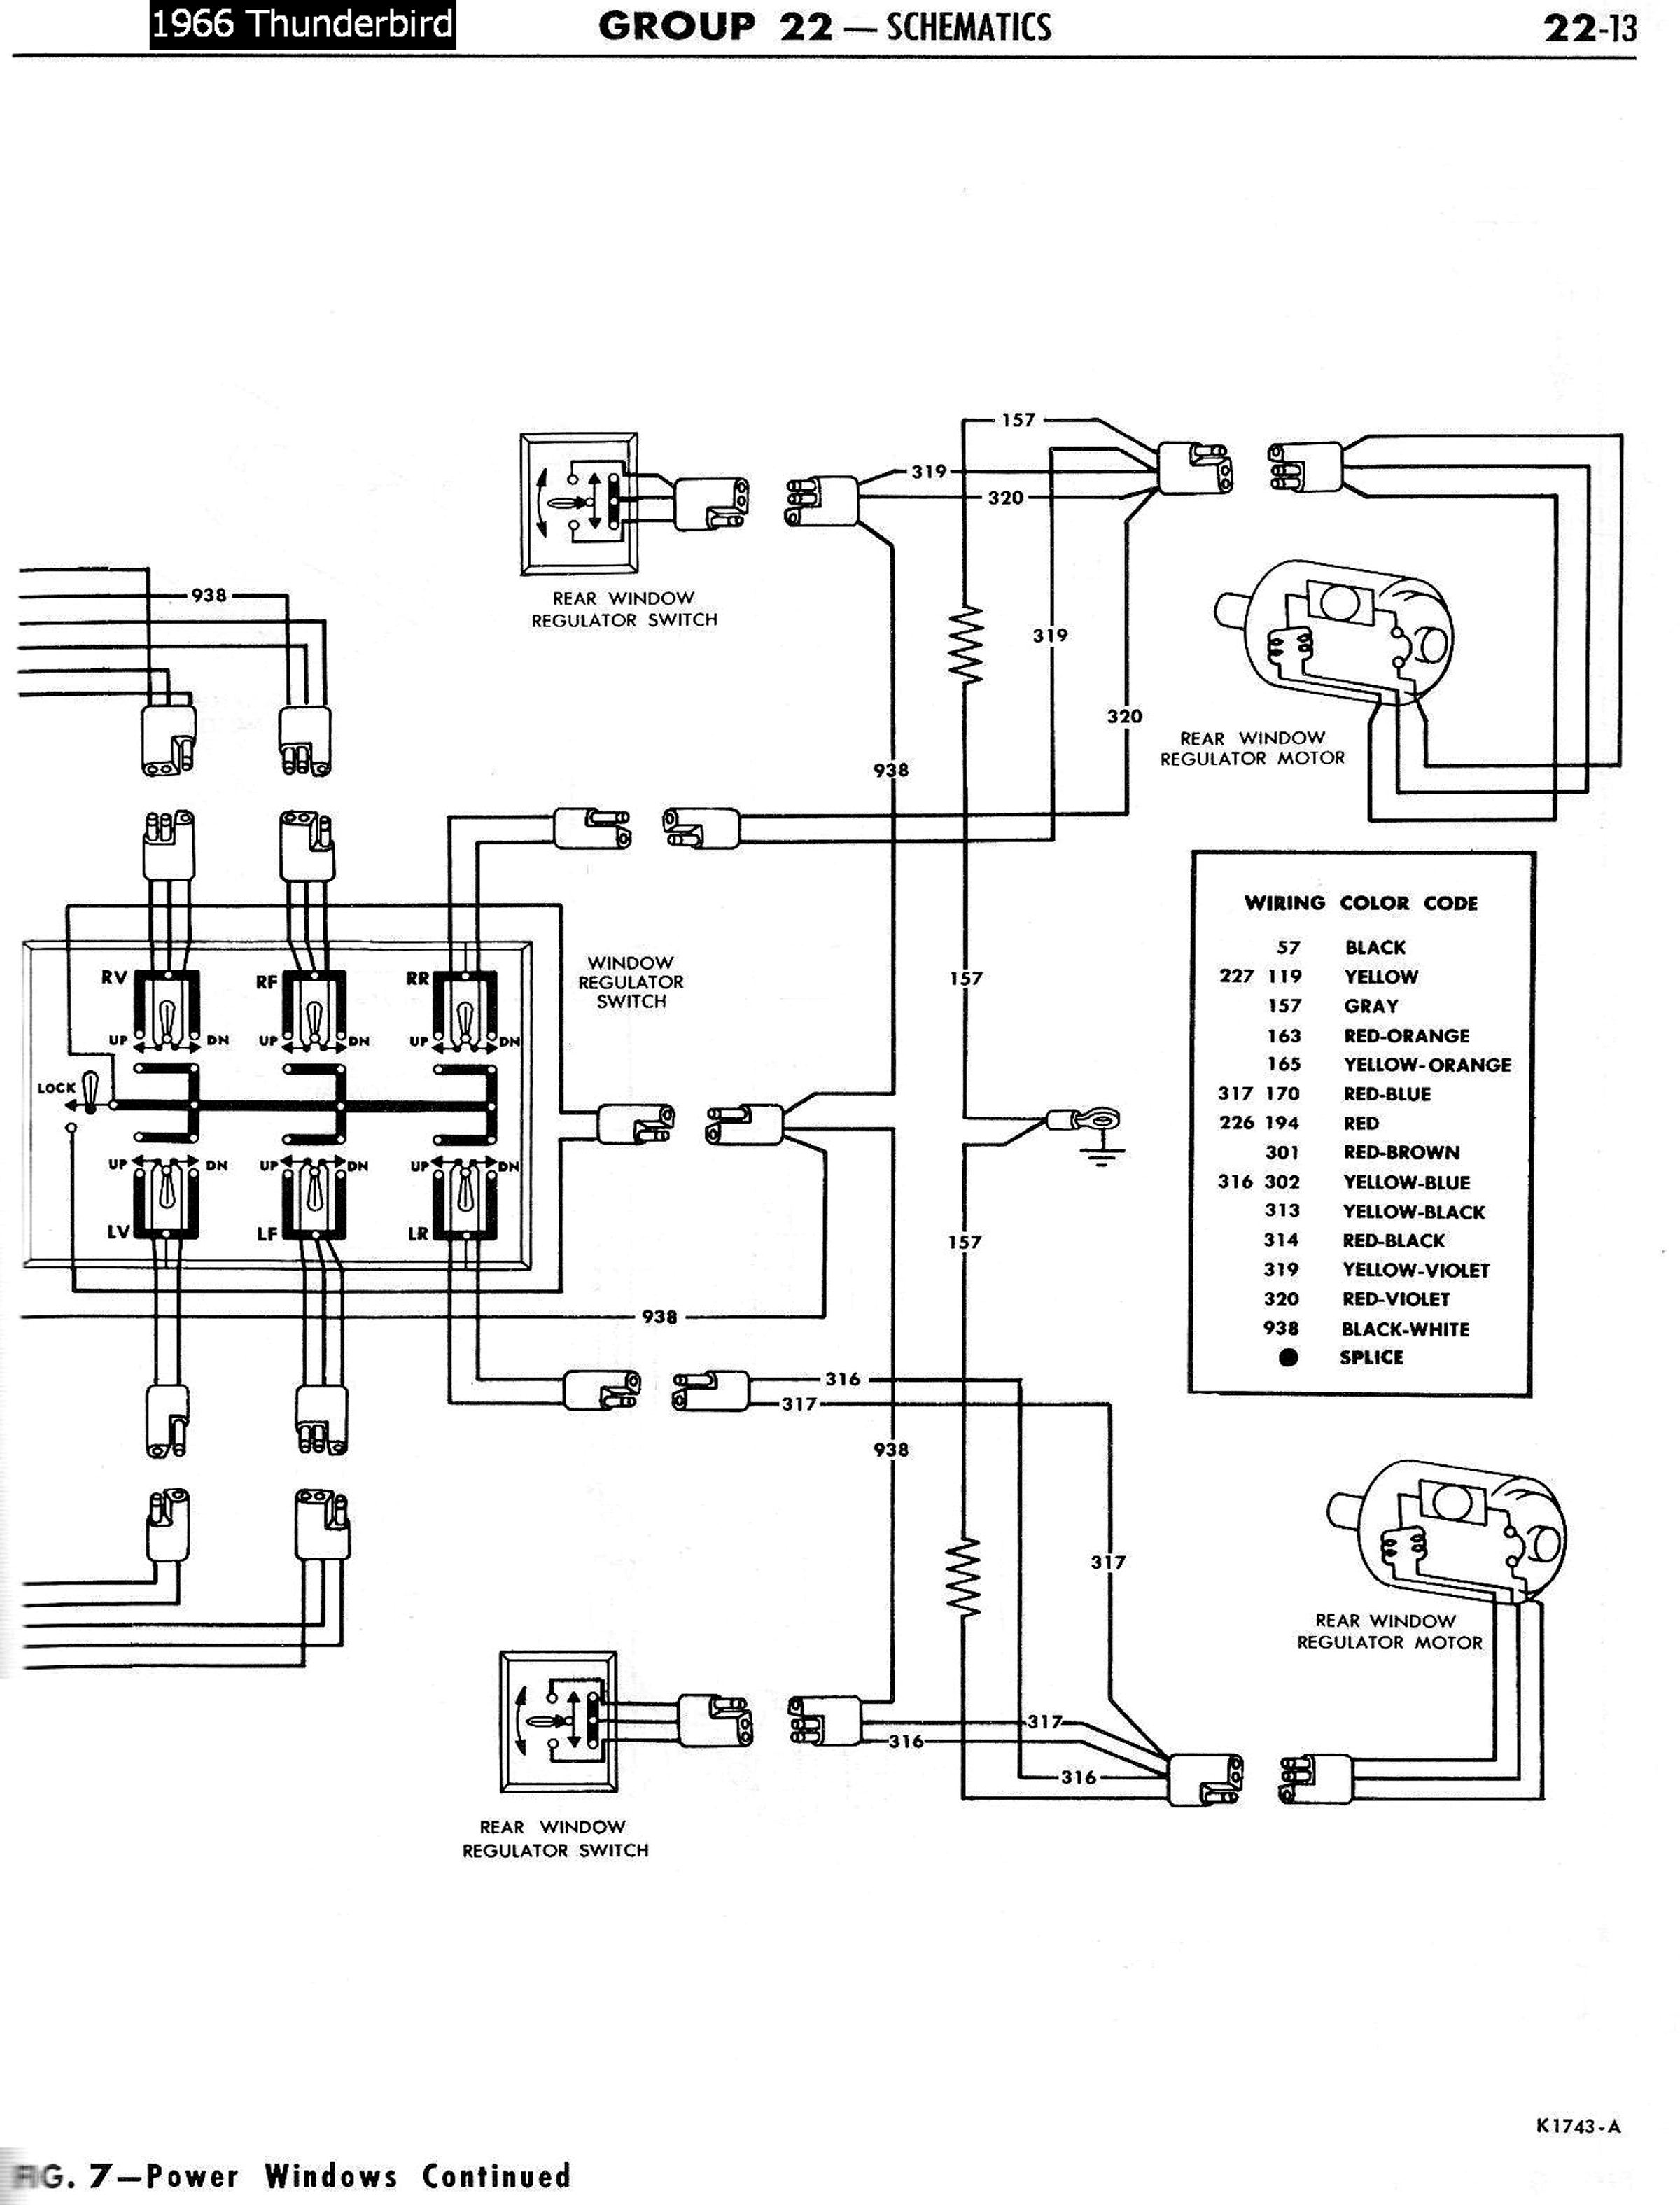 66TbirdPowerWindowsSchematicRight 1958 68 ford electrical schematics 1965 Thunderbird Window Regulator at virtualis.co